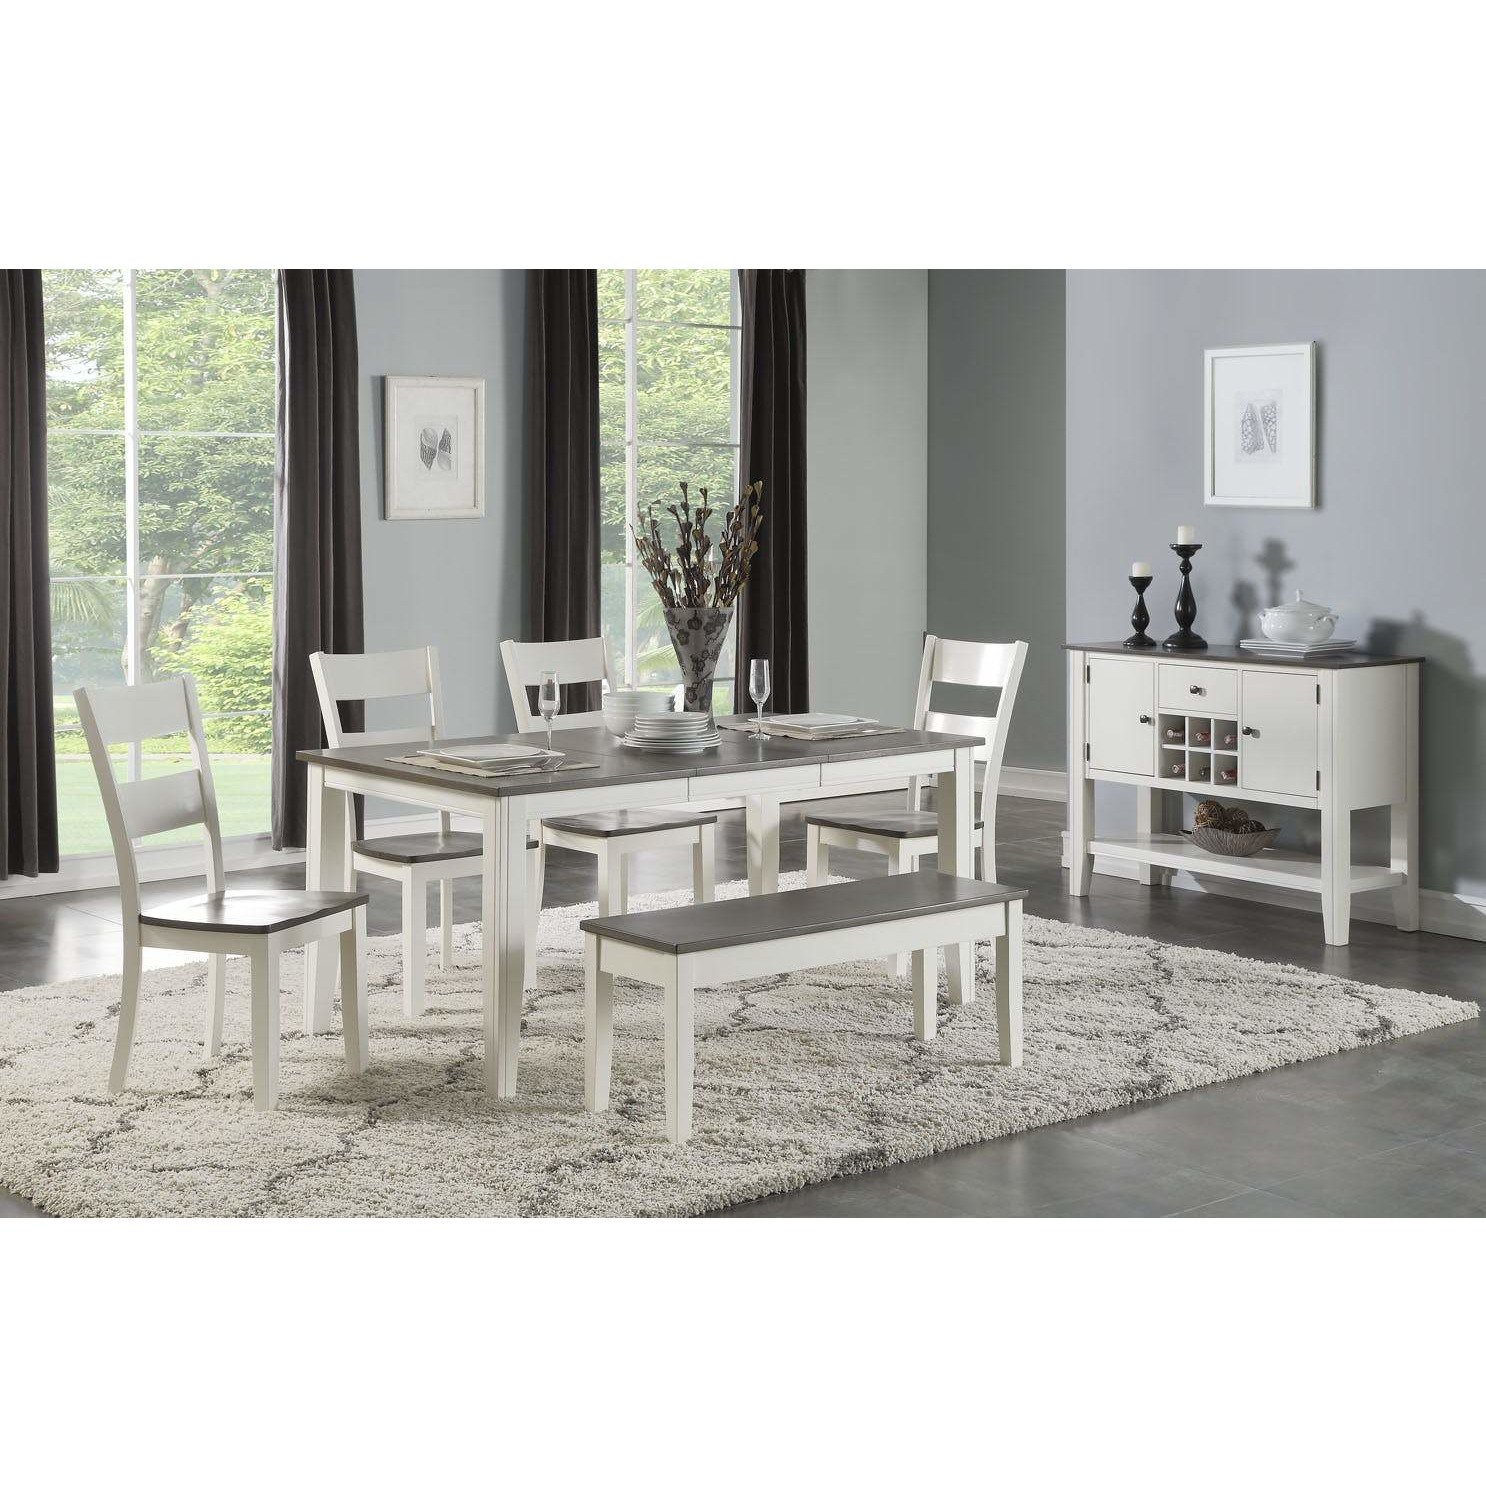 dining table and chairs offers